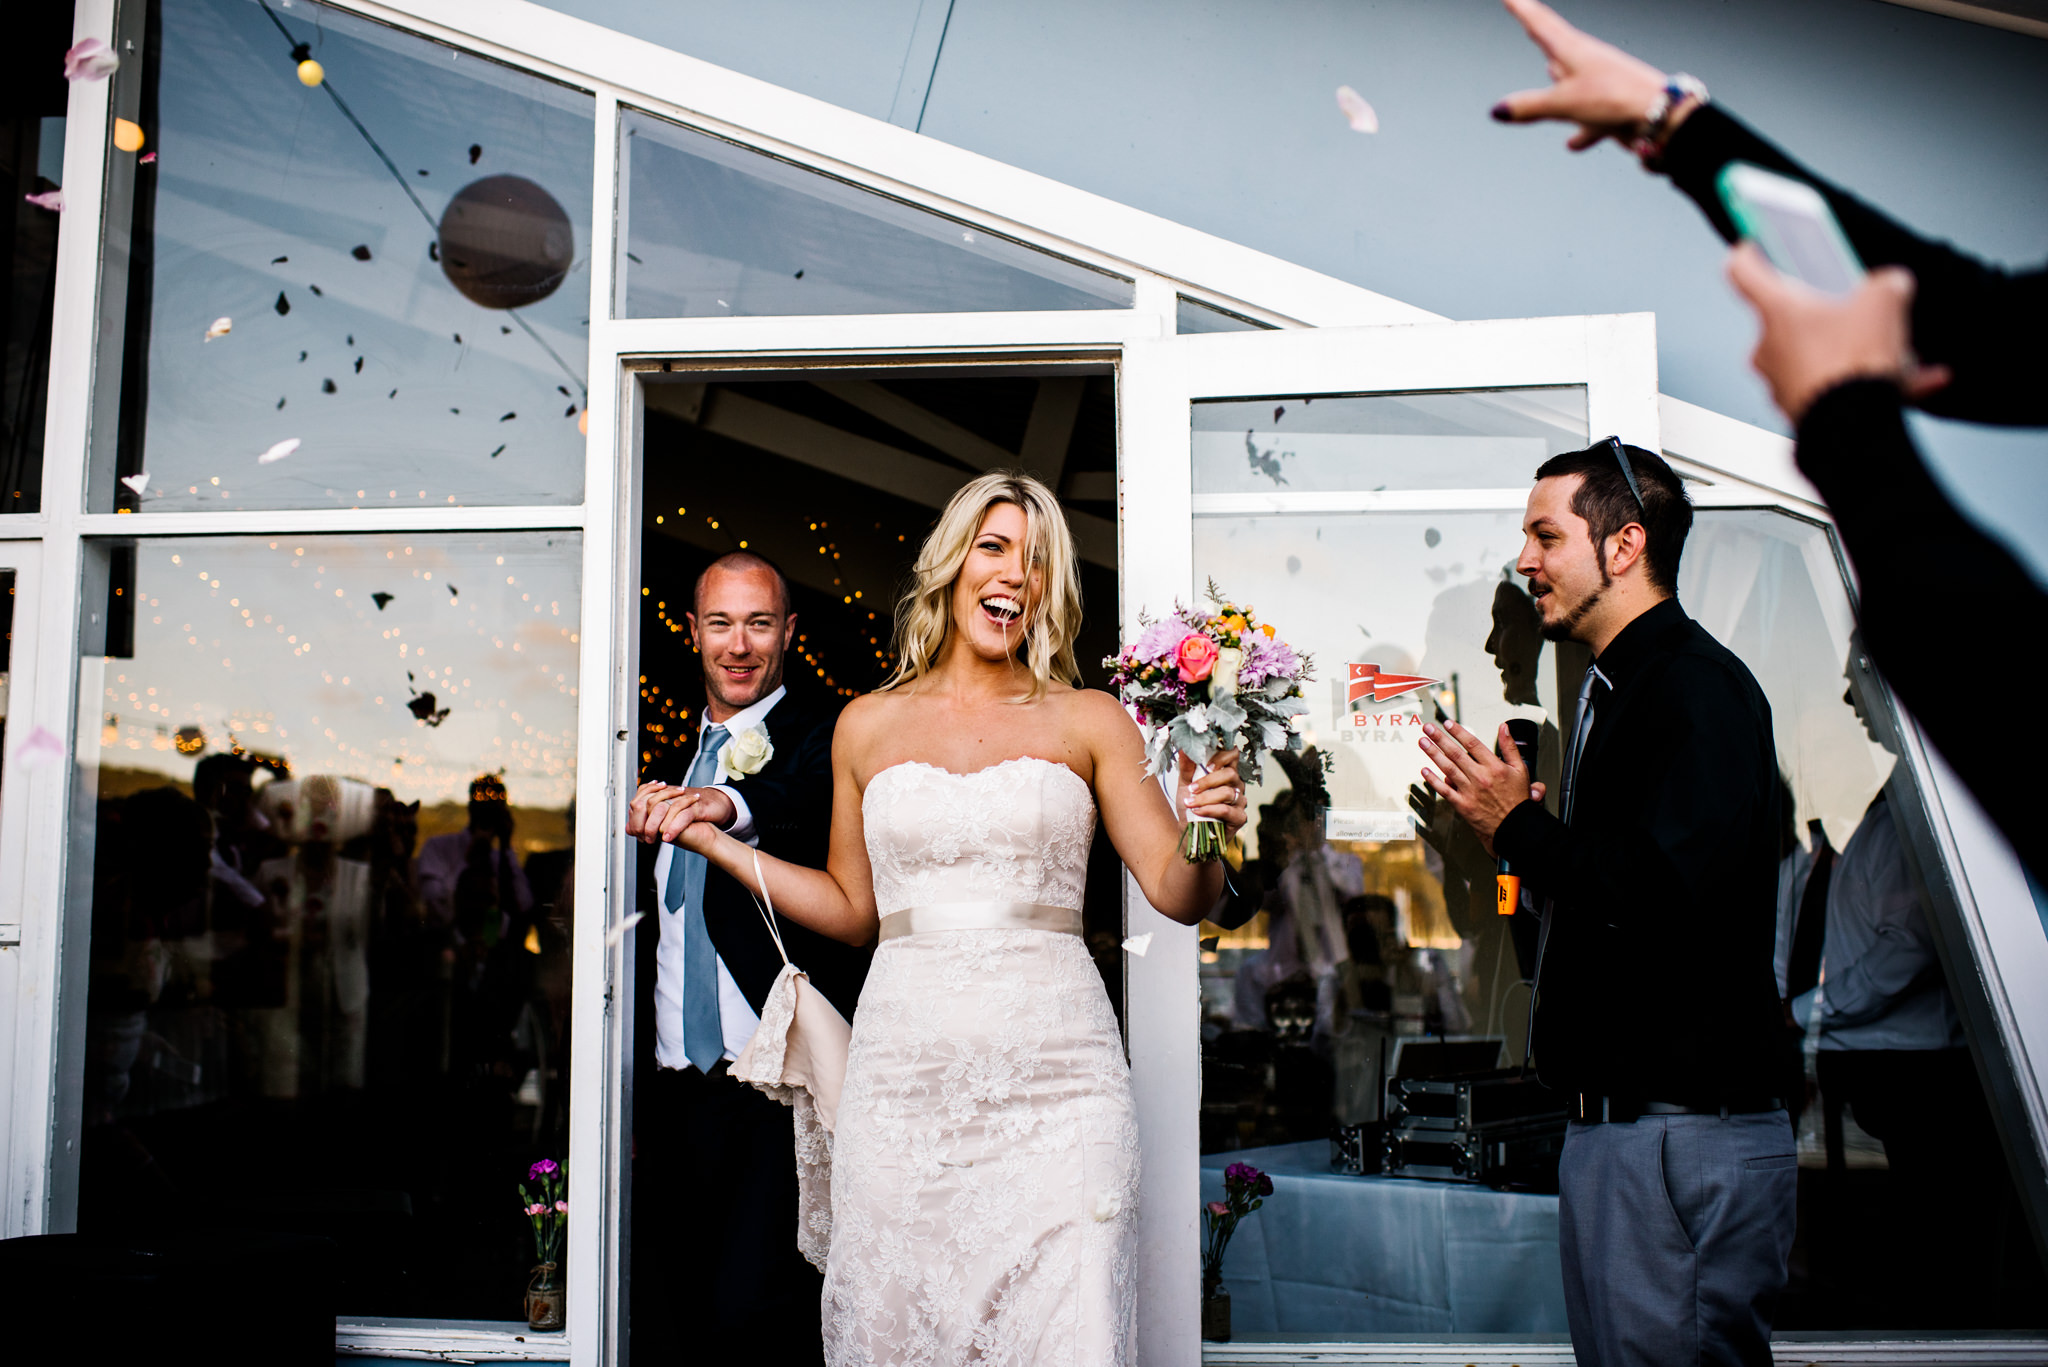 Northern beaches wedding venues - Bayview Yacht Club